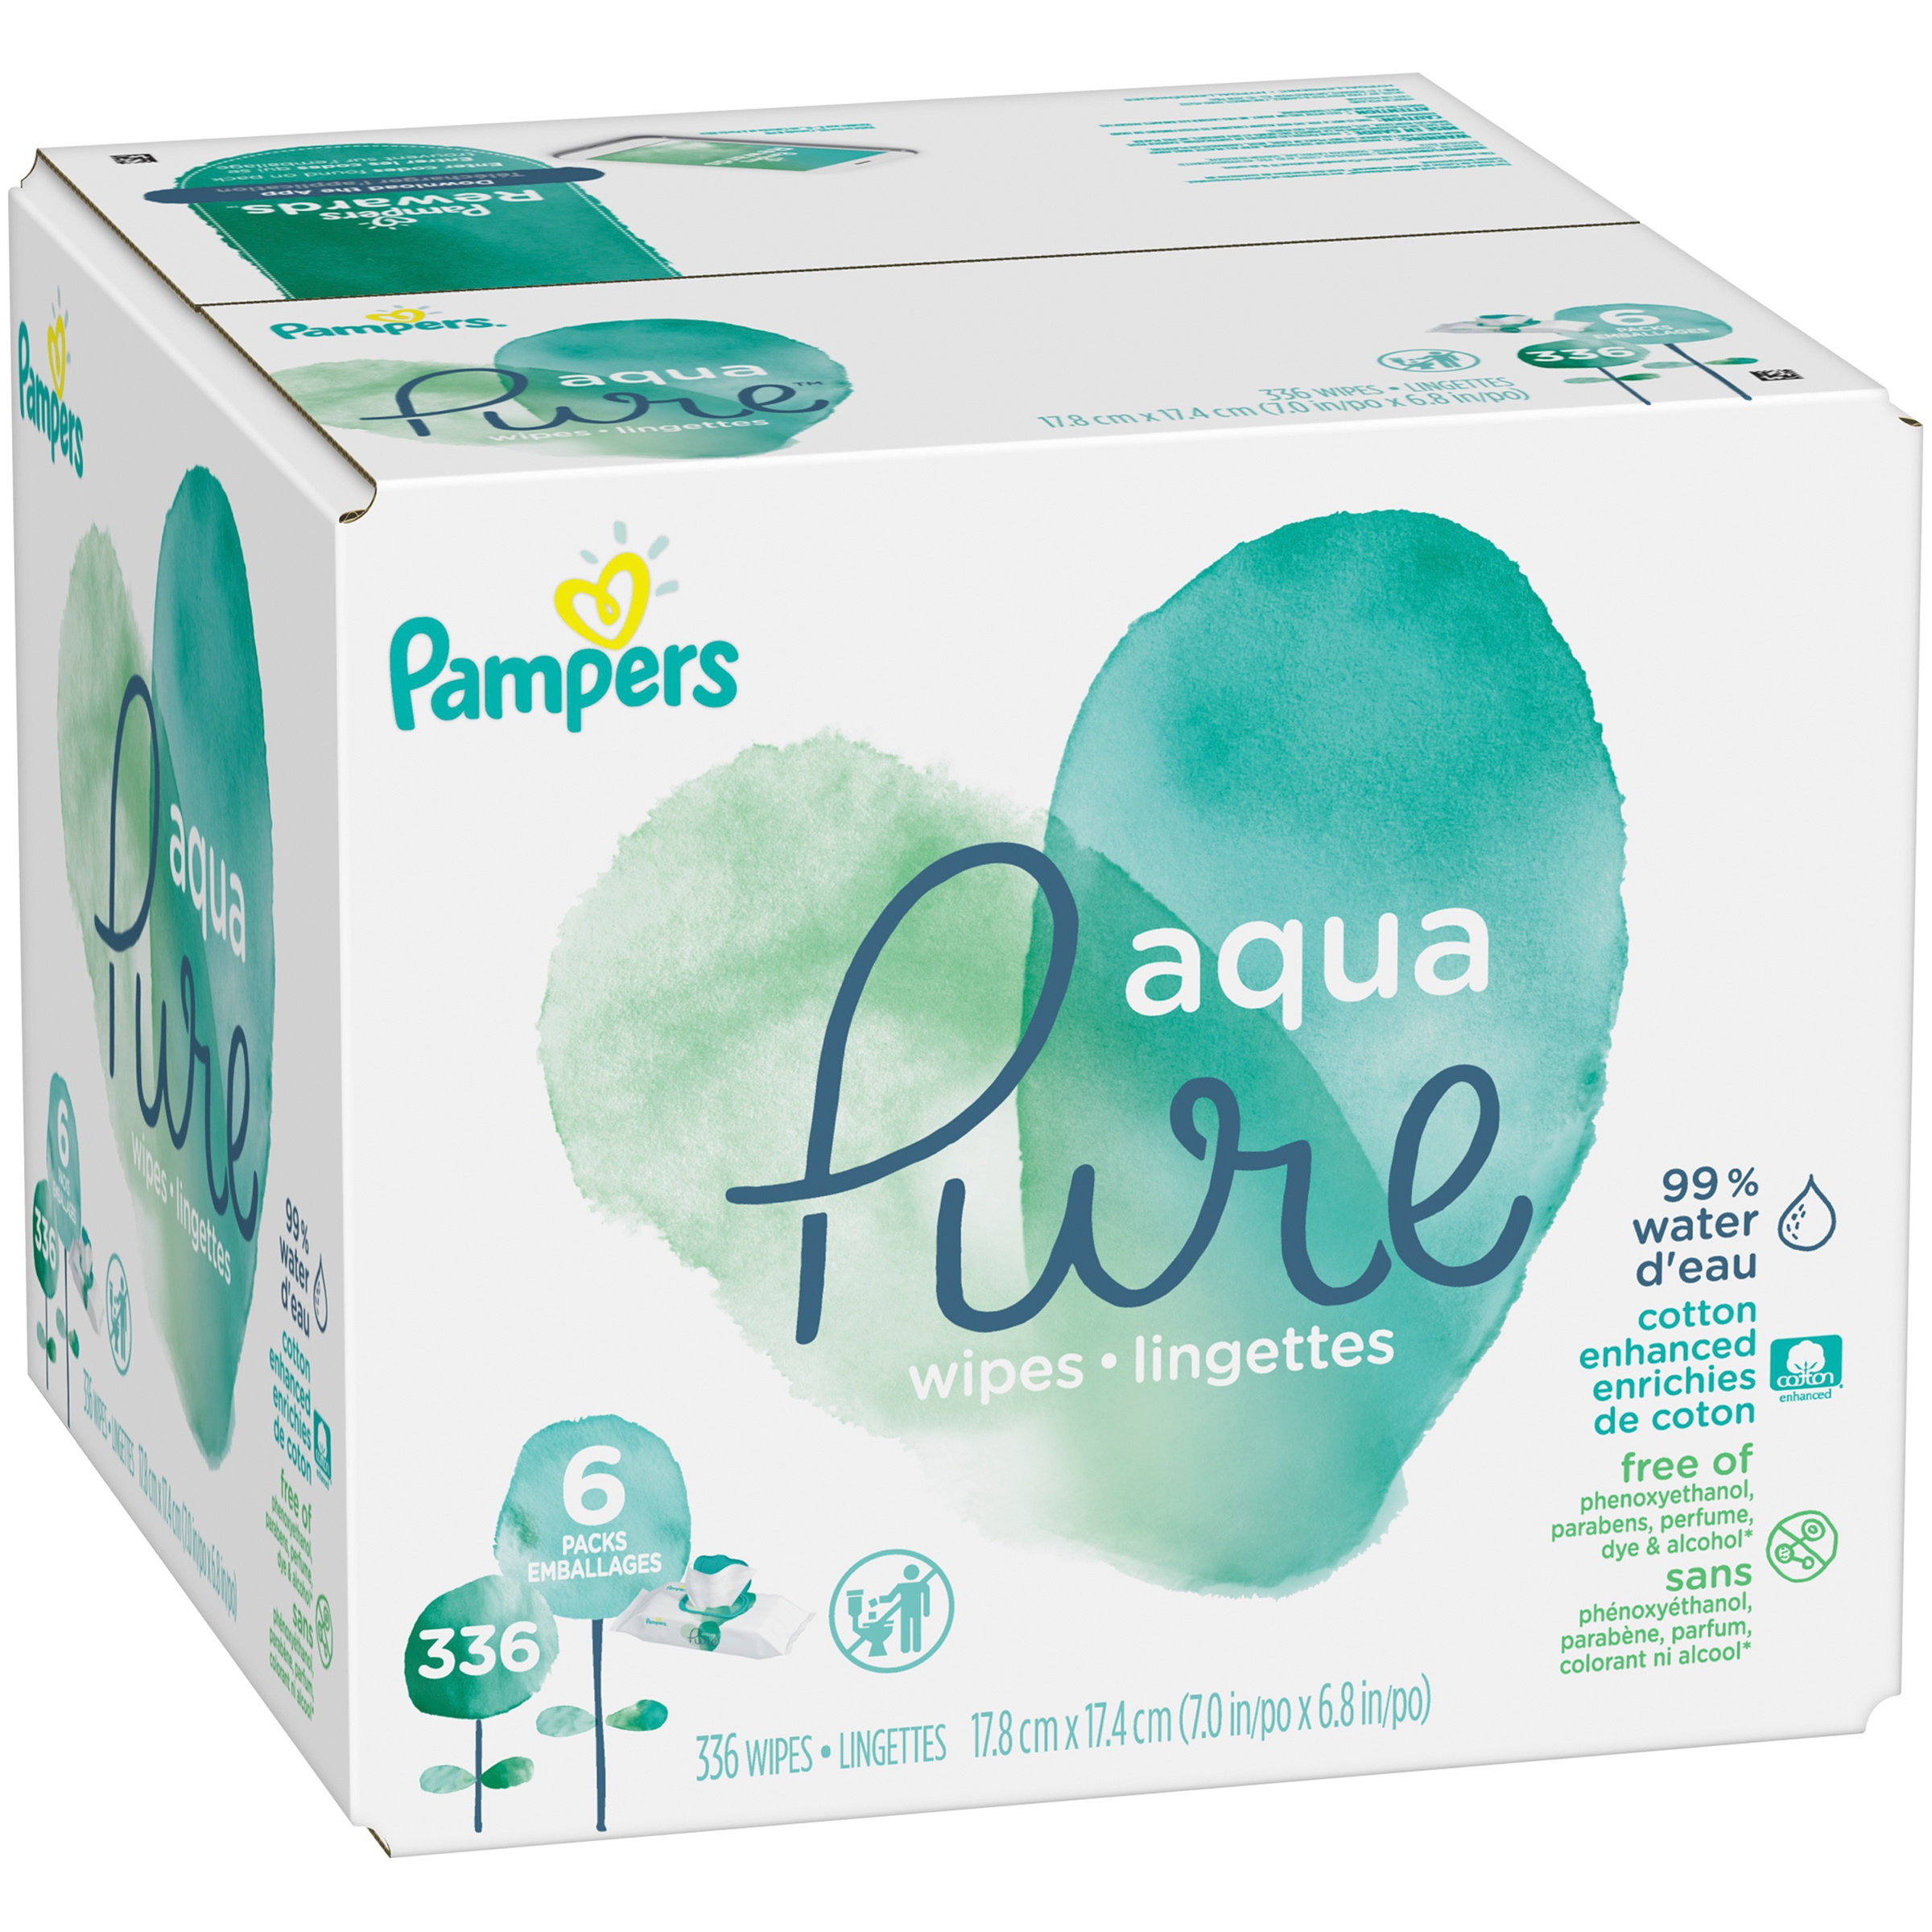 Pampers Aqua Pure Sensitive Baby Wipes Pop-Top, 336 Count, Pack of 6